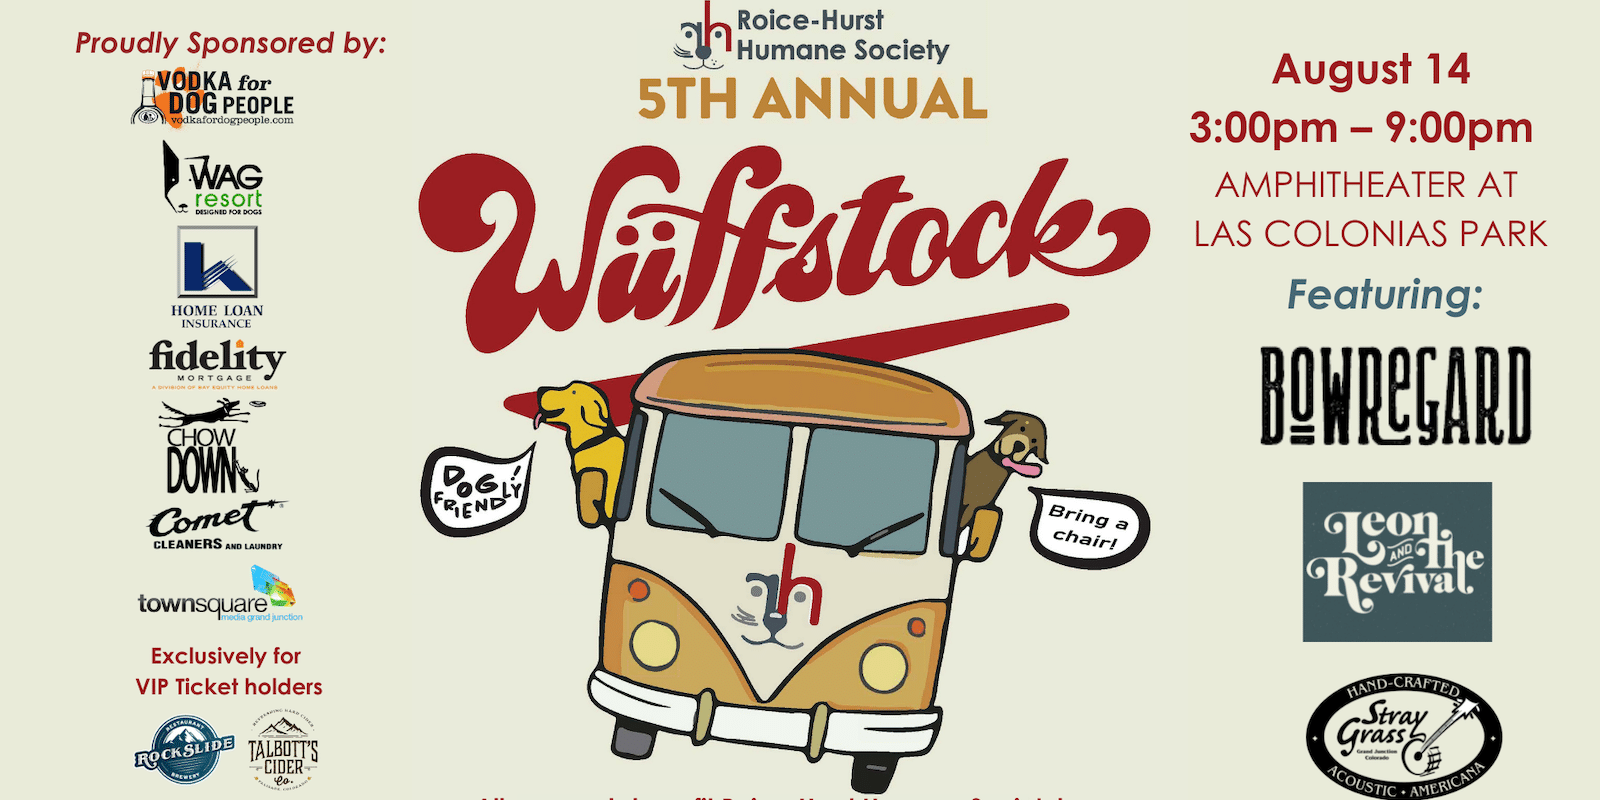 Image of the Wuffstock Music Festival information poster